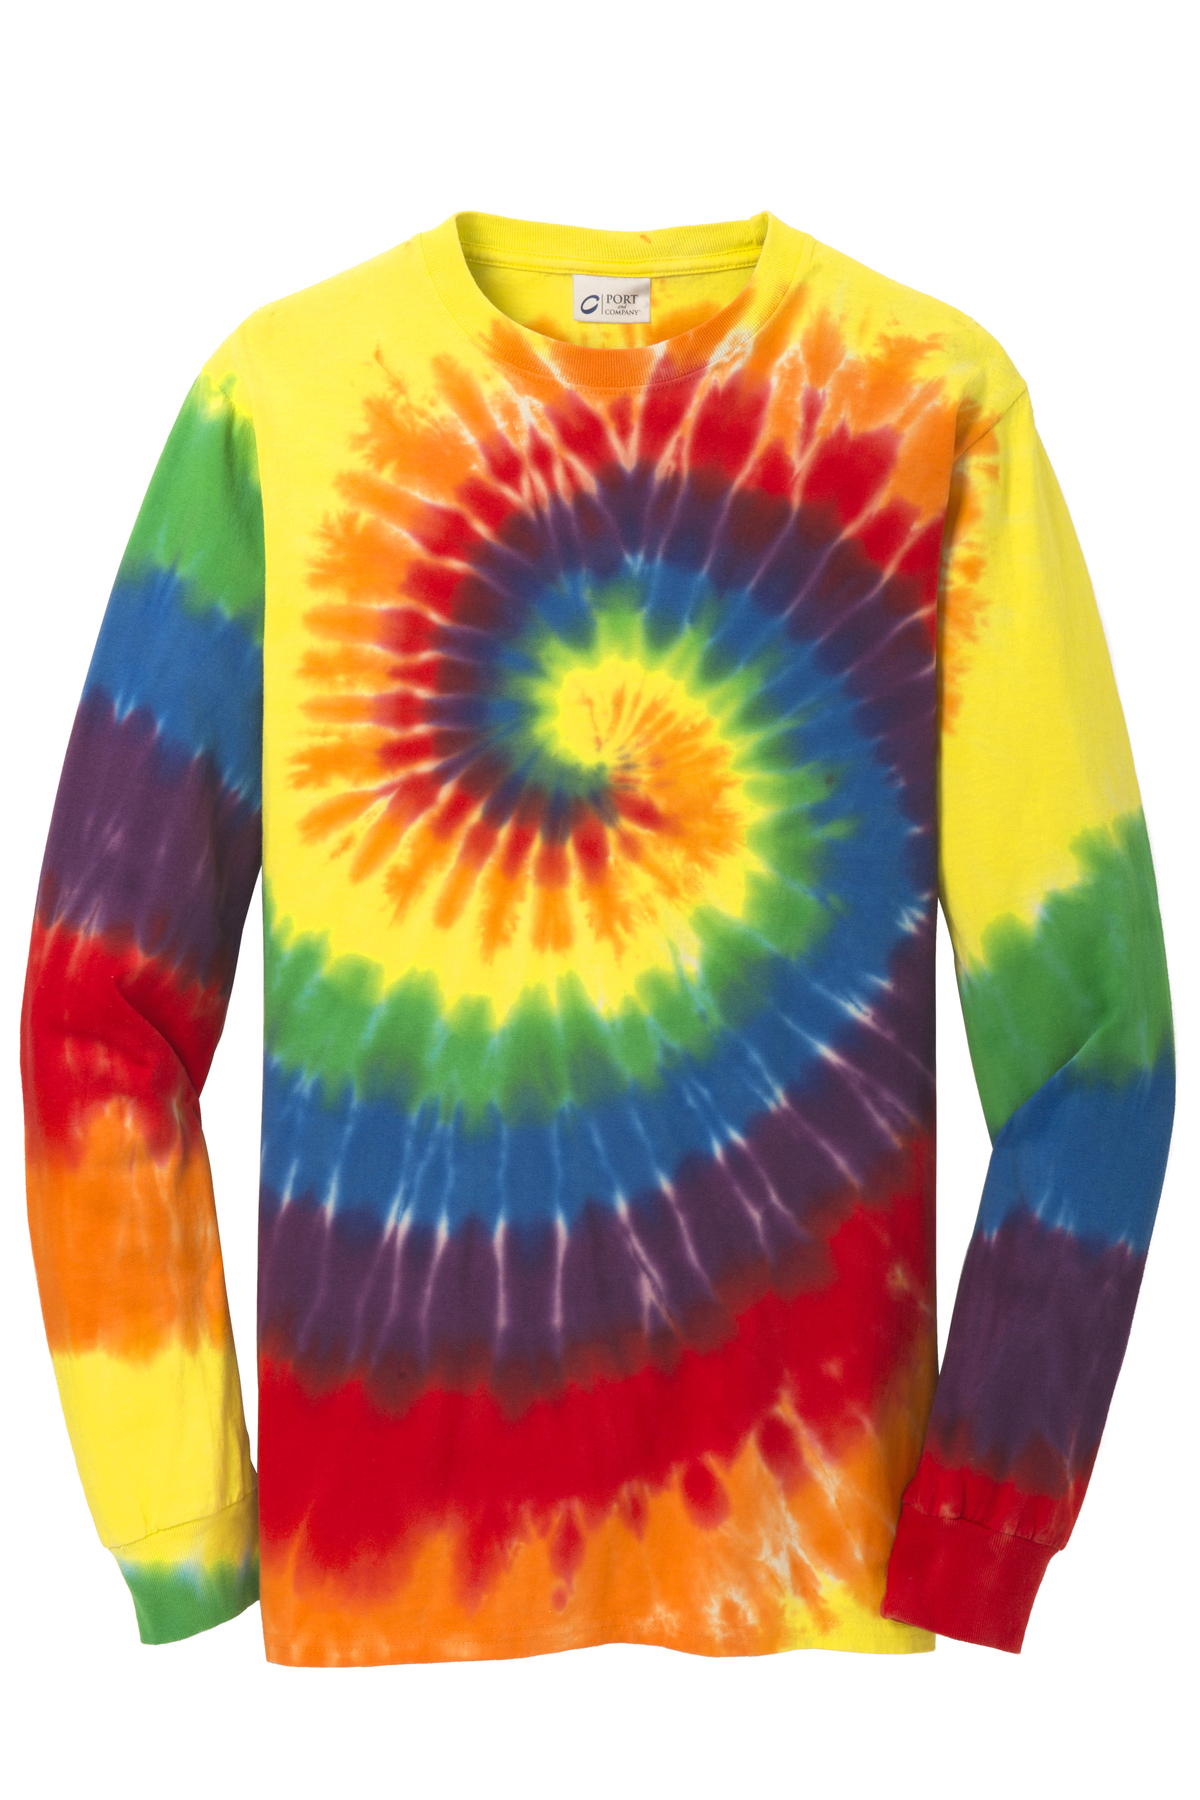 50 50 Outlet >> Port & Company® Tie-Dye Long Sleeve Tee | Specialty | T ...